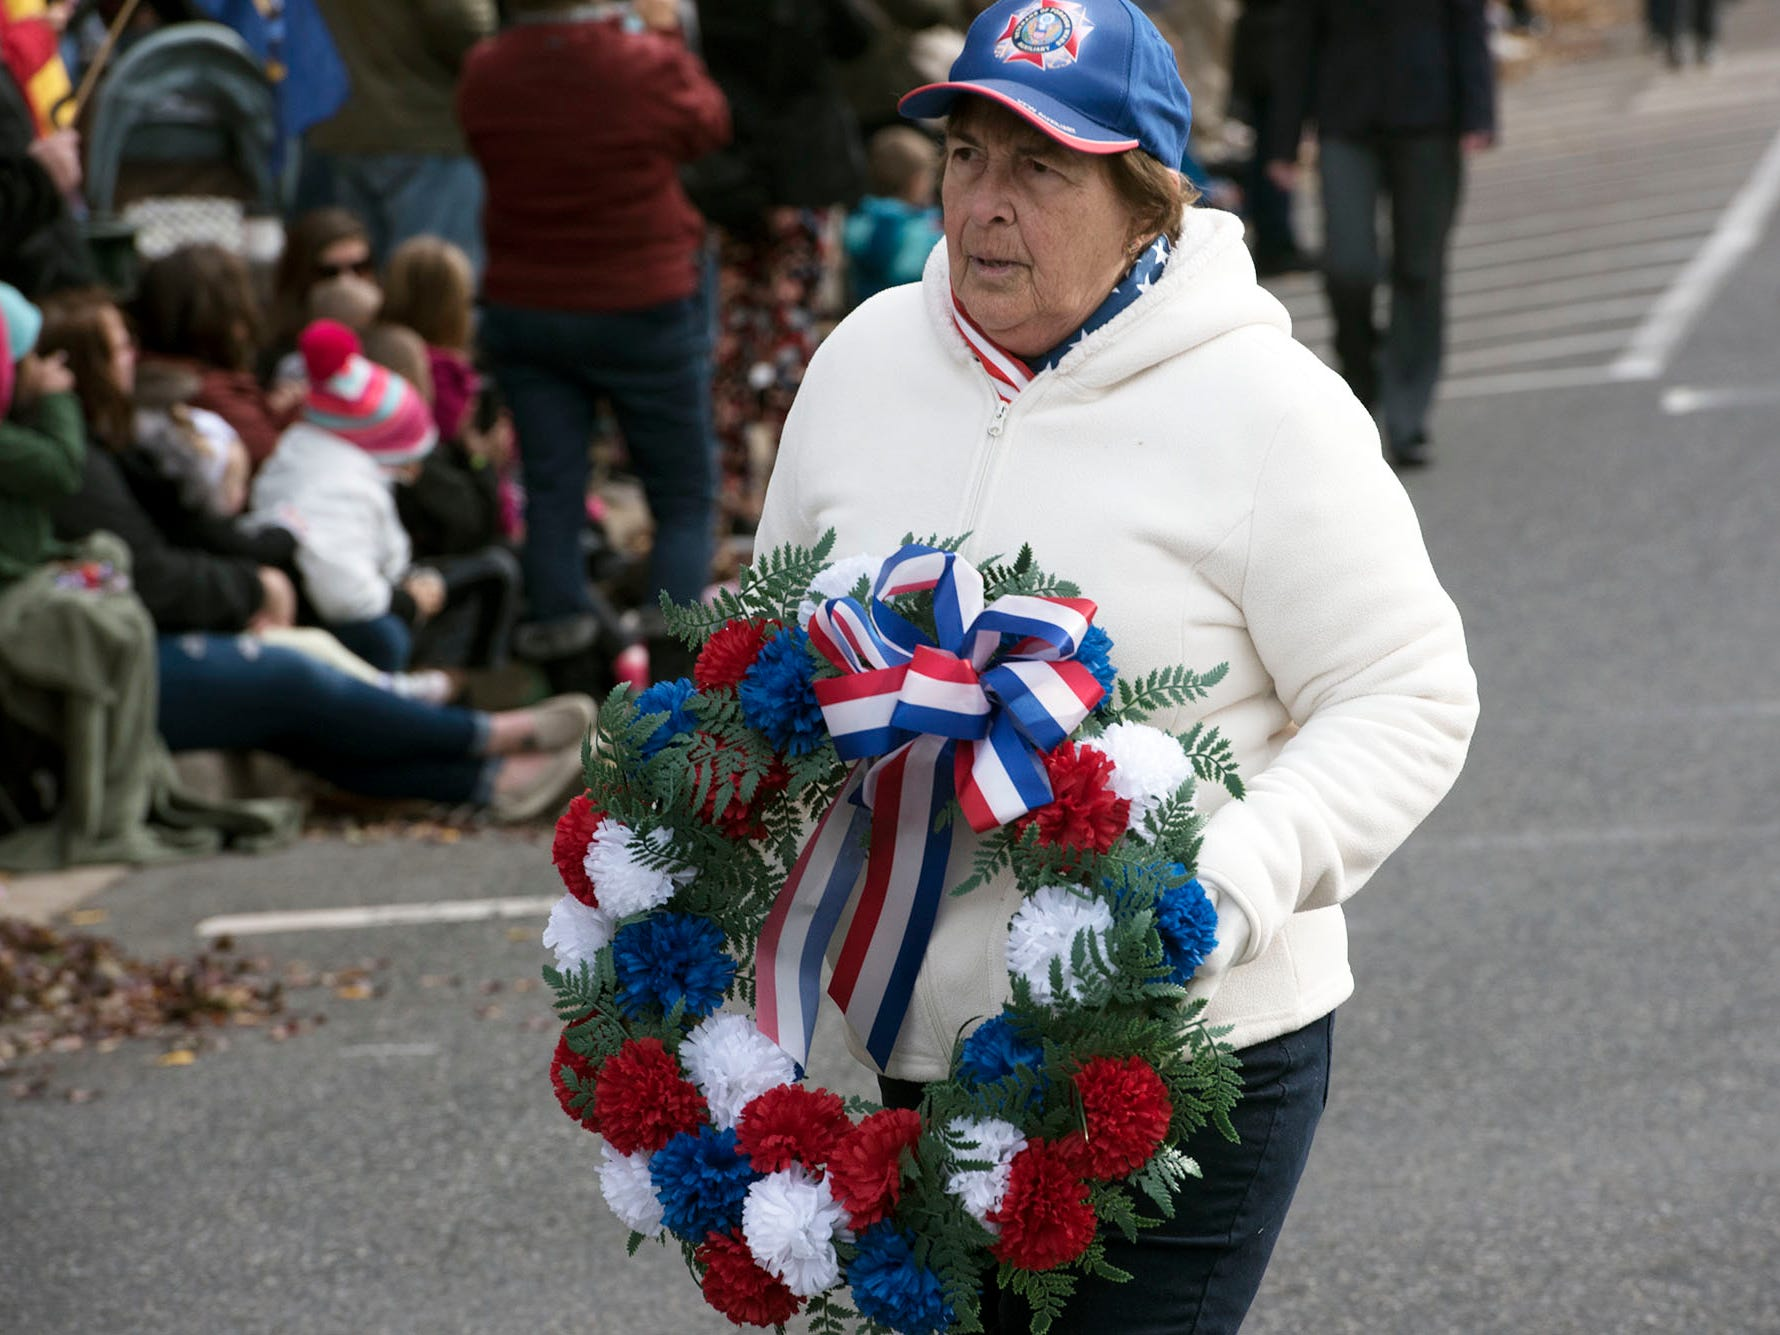 Julie Marker carries the wreath for Memorial Square. The Veterans Day Parade and ceremony to honor members of the military was held Monday, November 12, 2018 along Lincoln Way East and at Memorial Square.